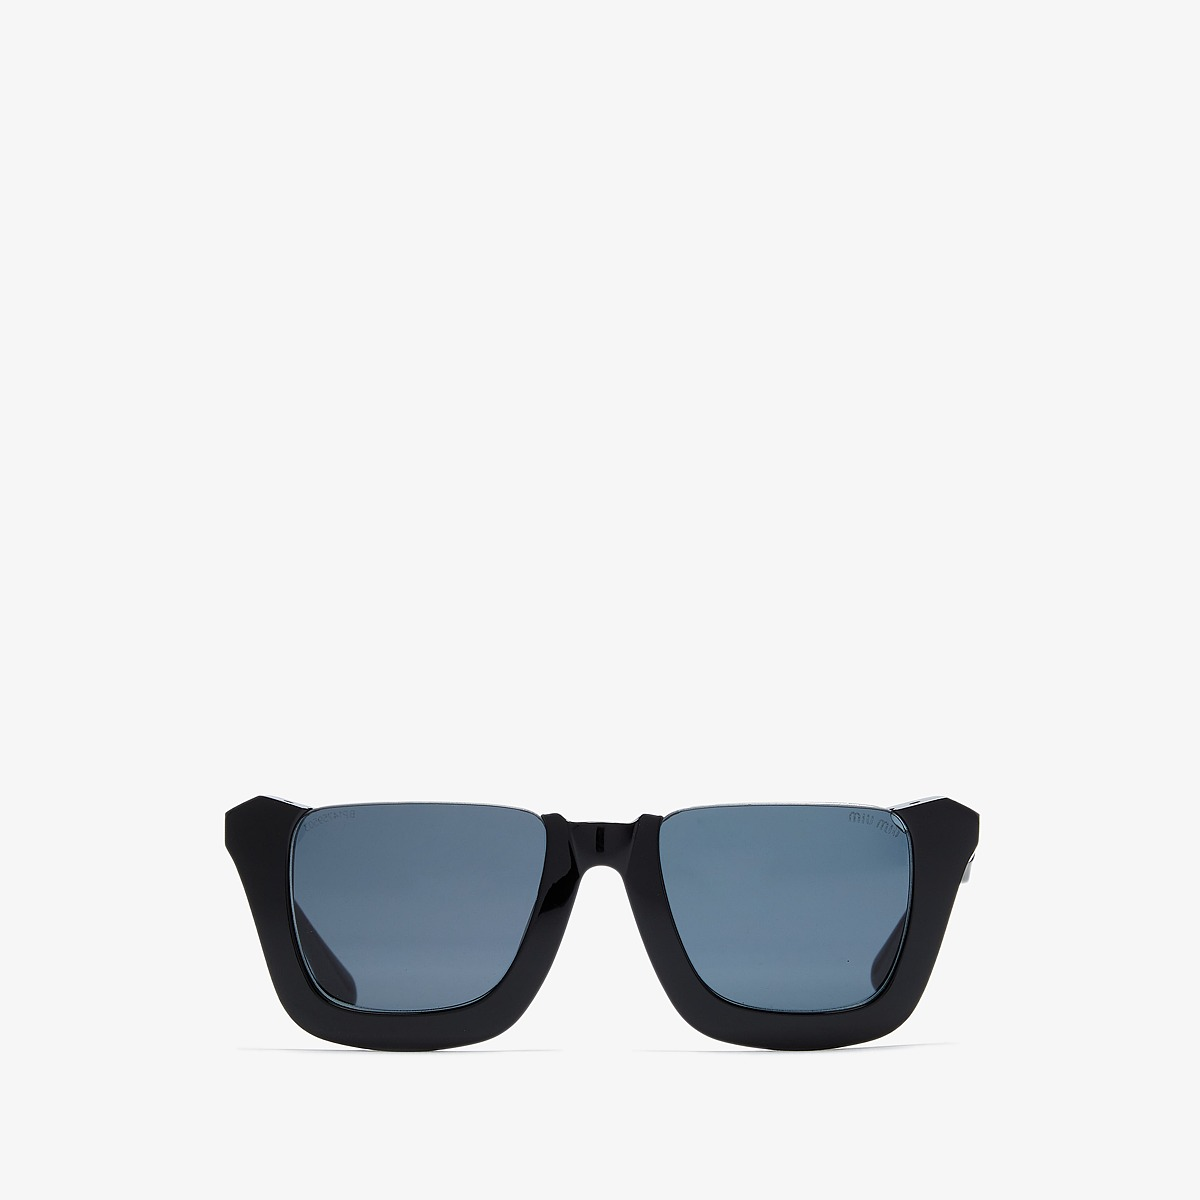 Miu Miu 0MU 52RS Black/Grey Gradient Fashion Sunglasses